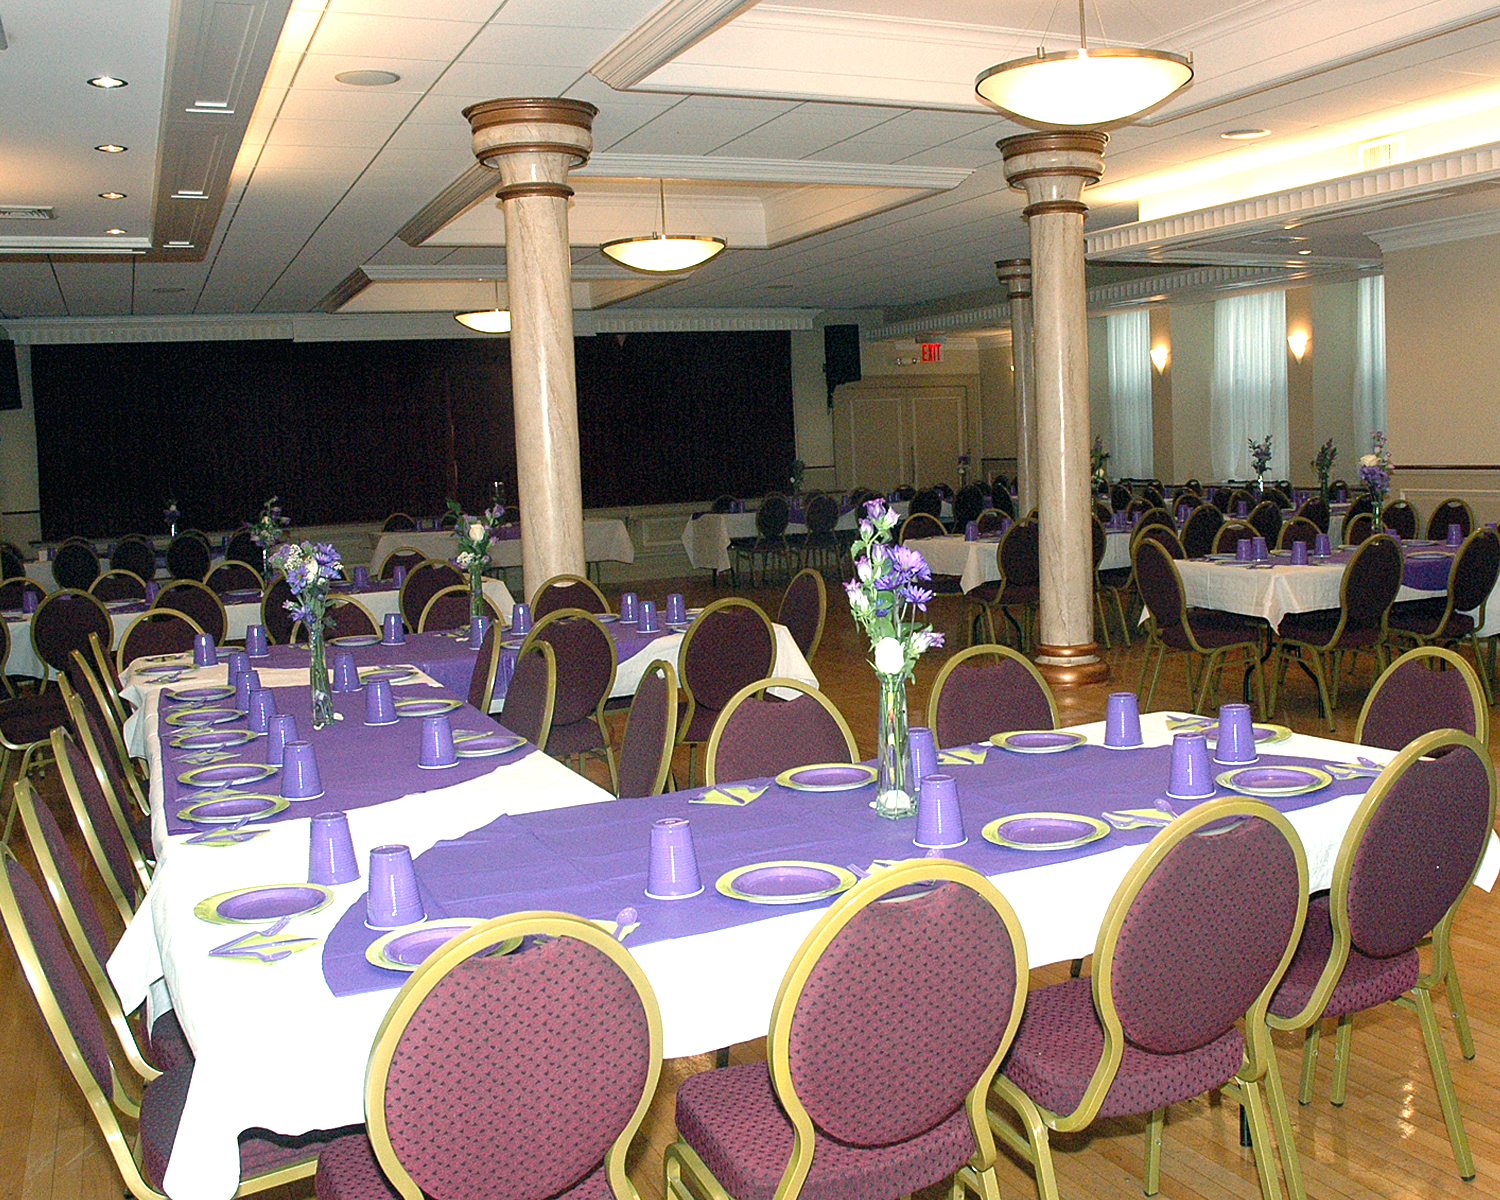 The catering hall ready for the celebration